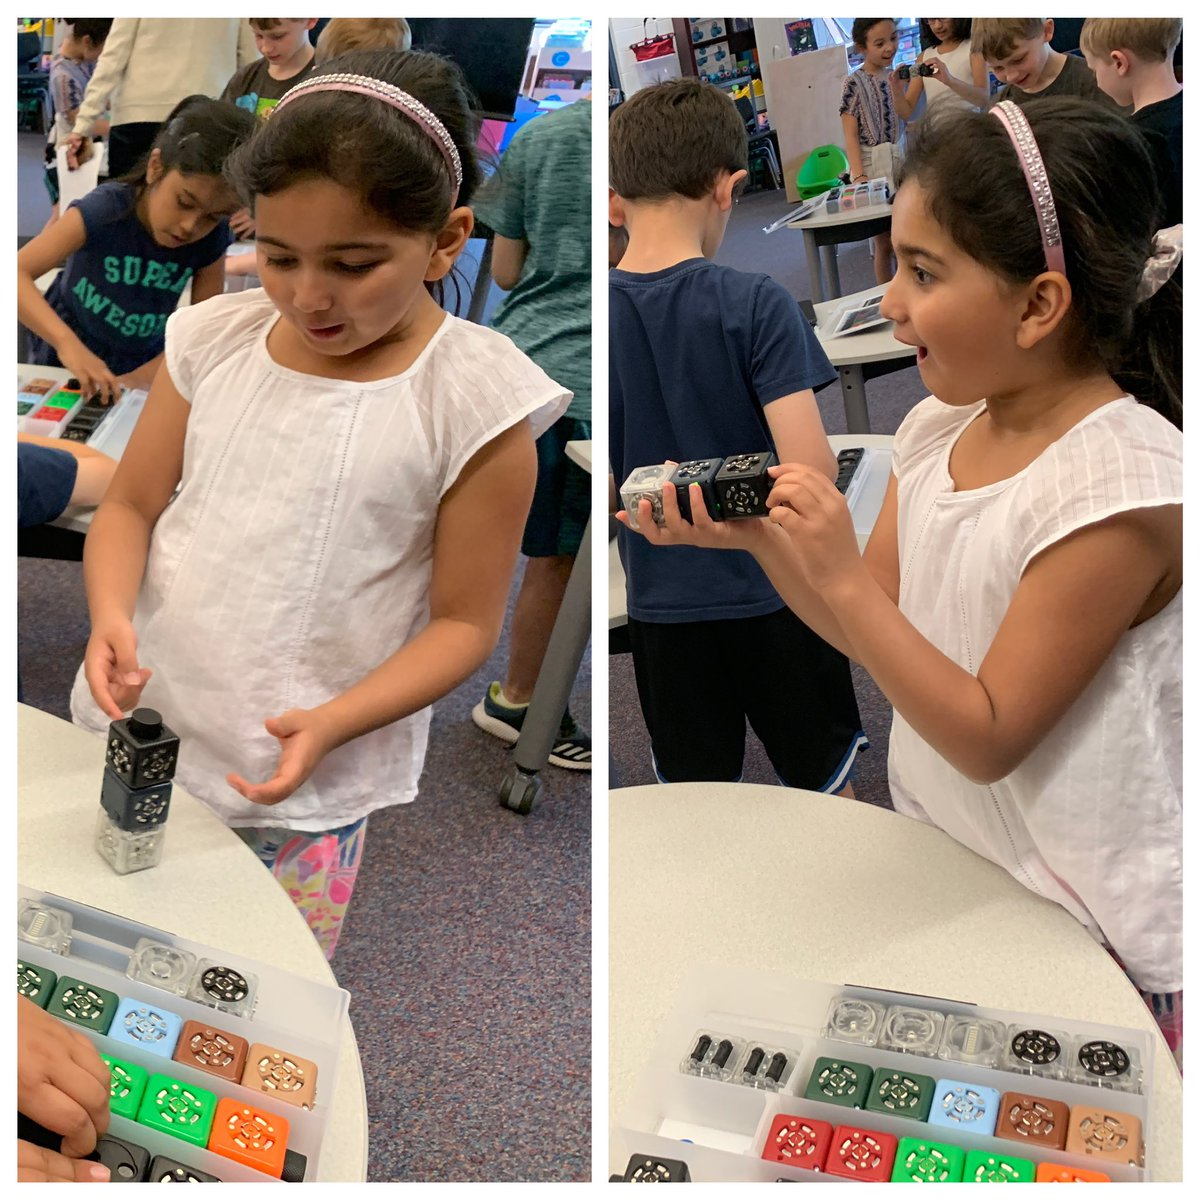 Our #WBPandas are so focused and interested working with robots, using different sensors and action Cubelets! Their engagement and reactions tell it all! 🥰 #WeAreD34 @ReadFreeley @jenlynnelson